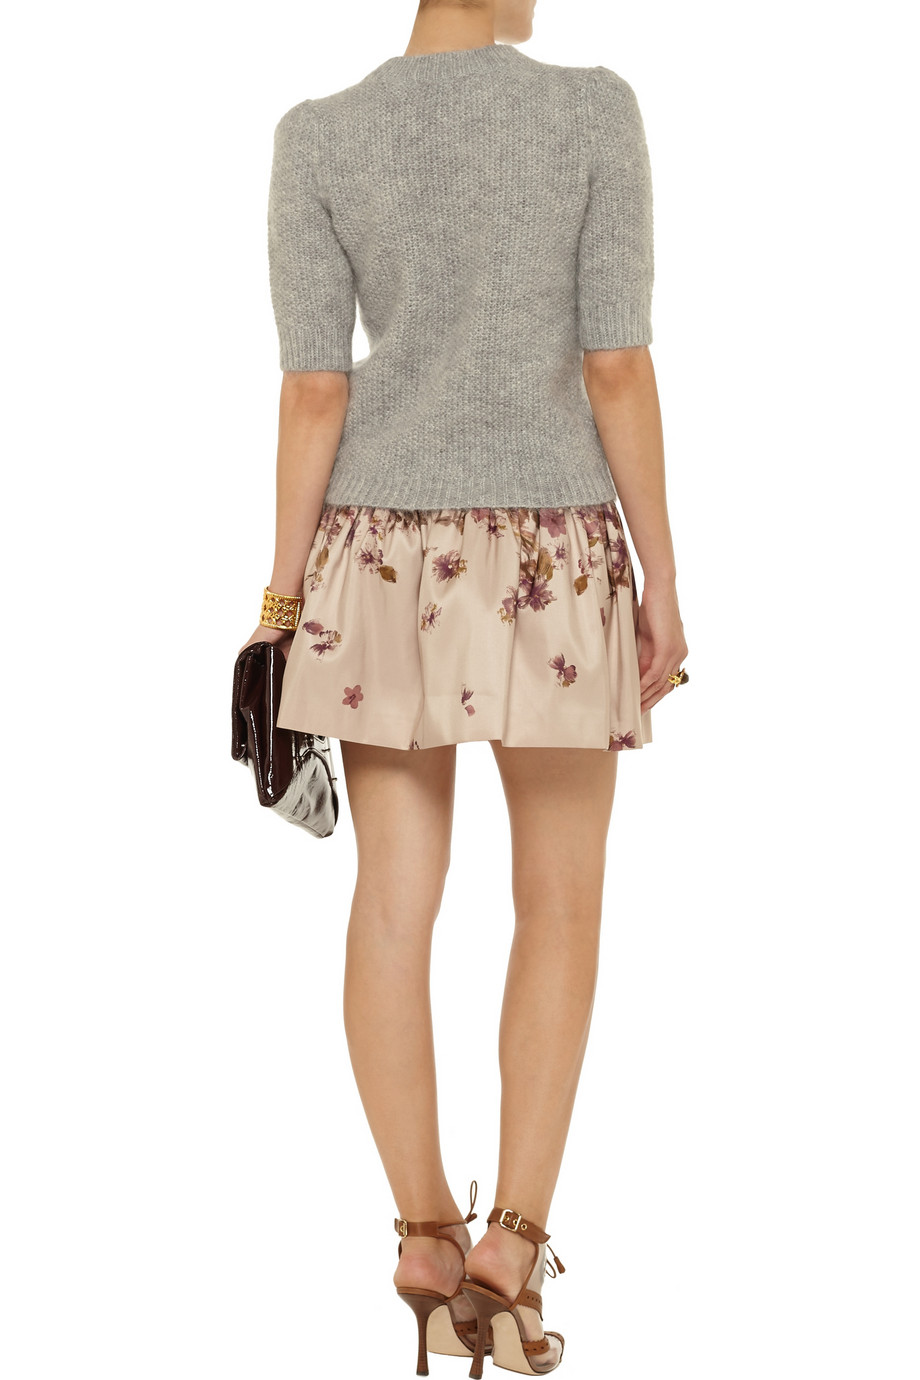 Temperley London Nadine mohair-blend sweater – 50% at THE OUTNET.COM